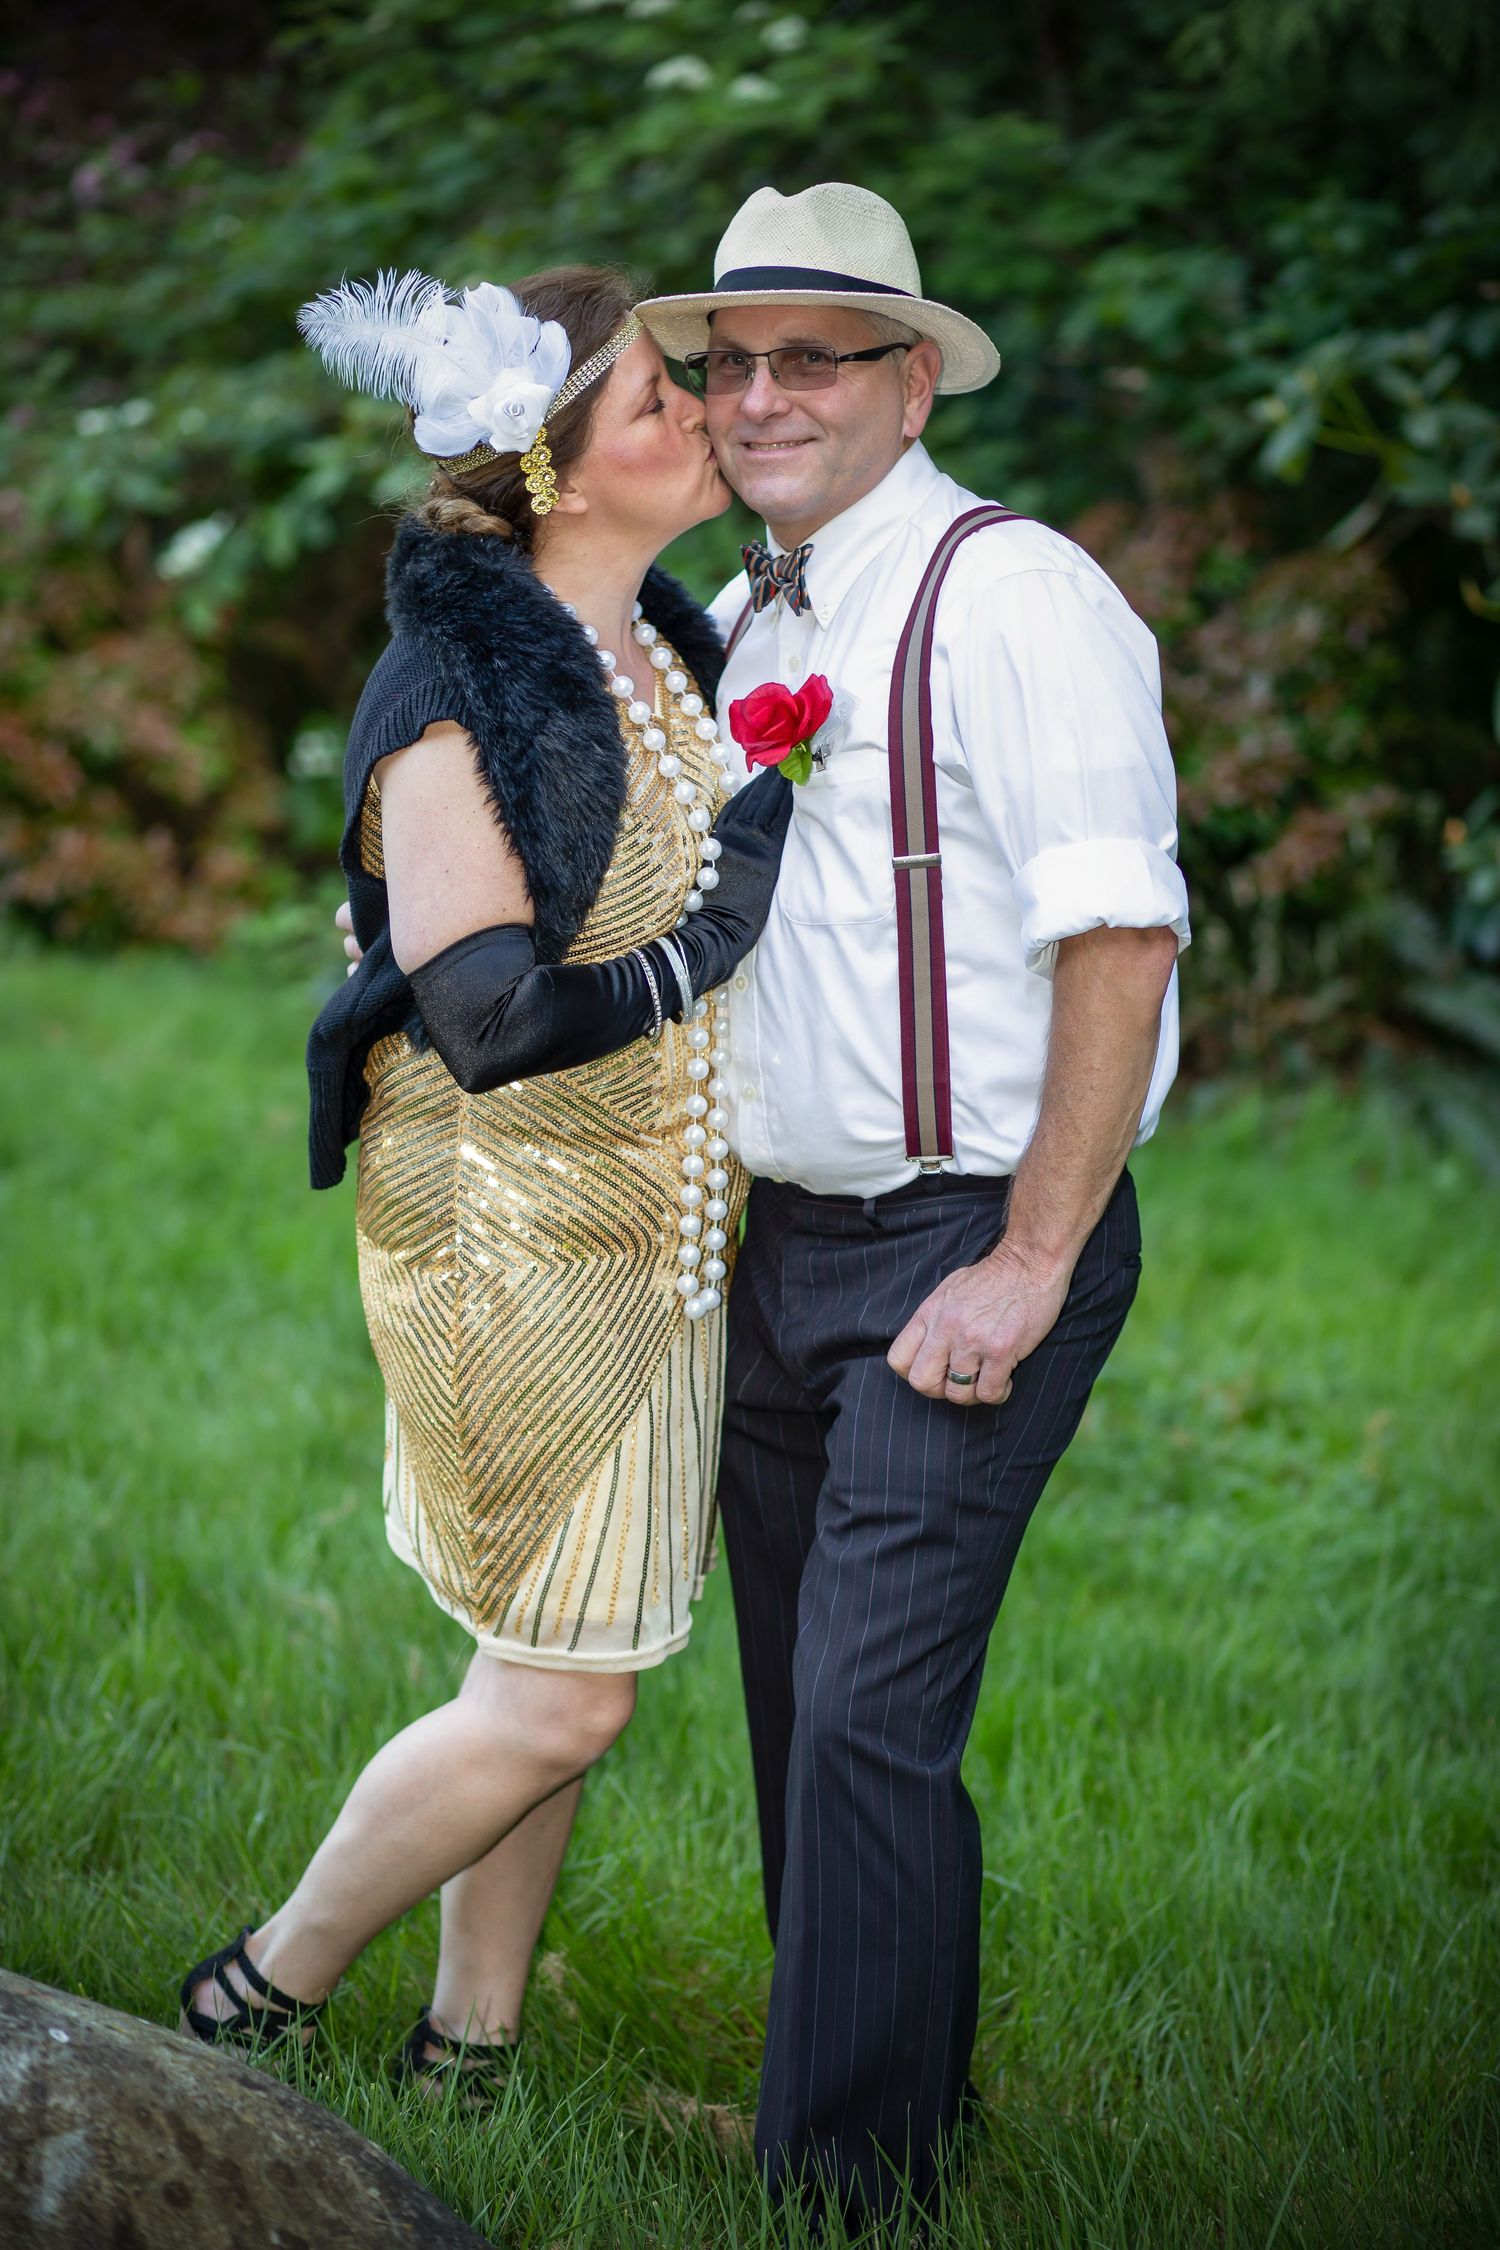 couple dresses in 1920's costume